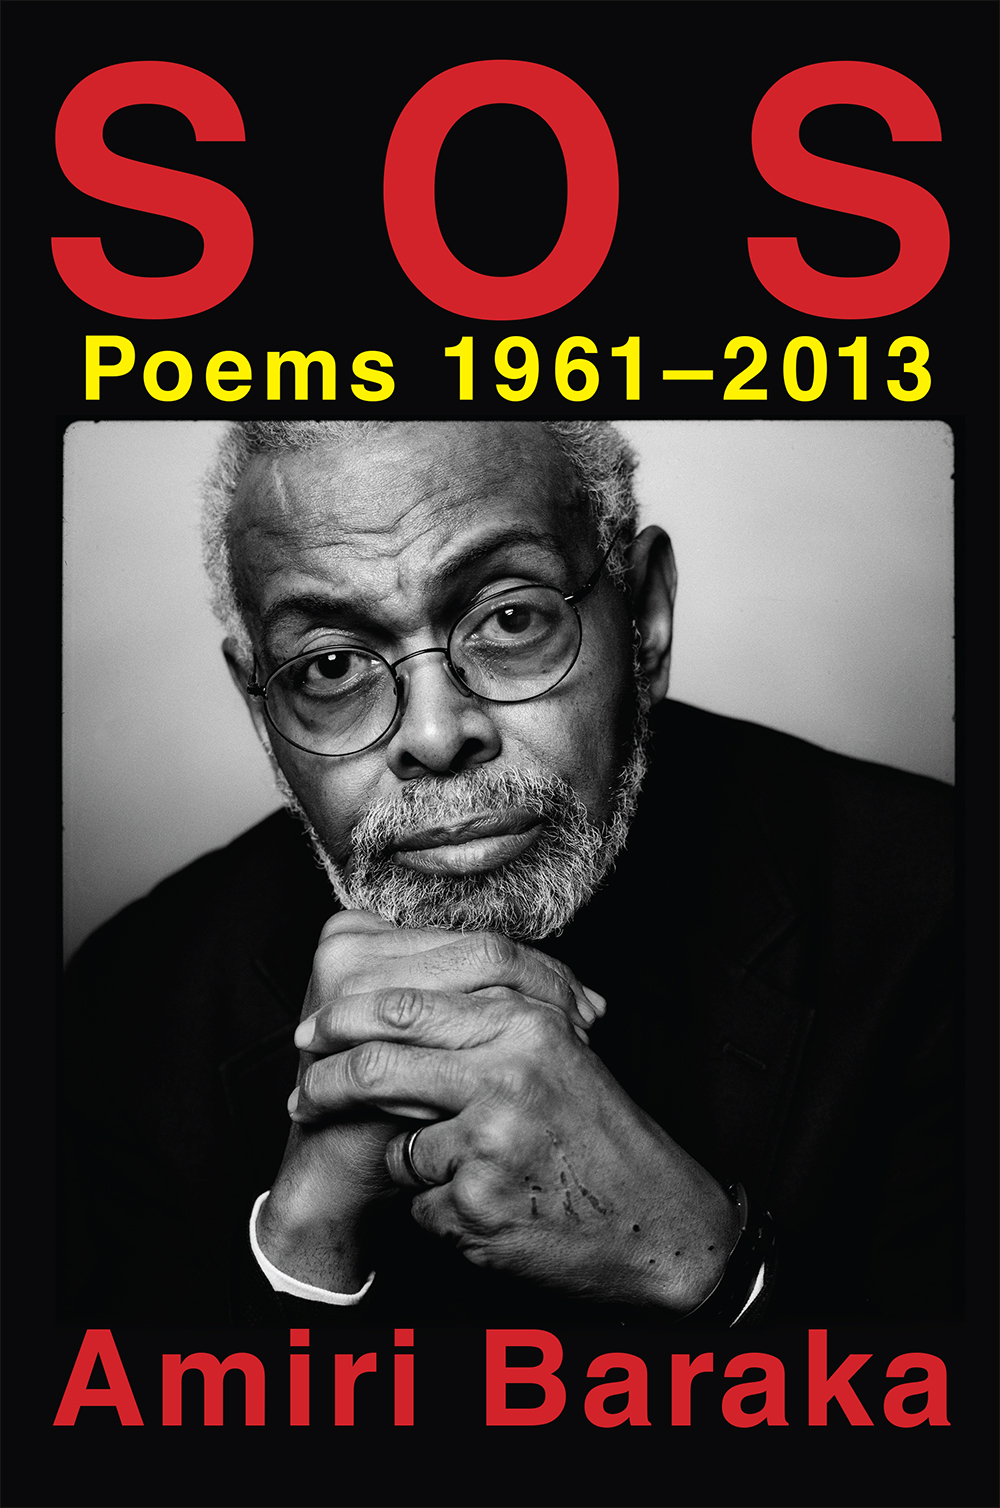 amiri baraka essays Leroi jones / amiri baraka liberator, july 1965  this essay was originally  commissioned by the new york times in december 1964, but was refused, with .